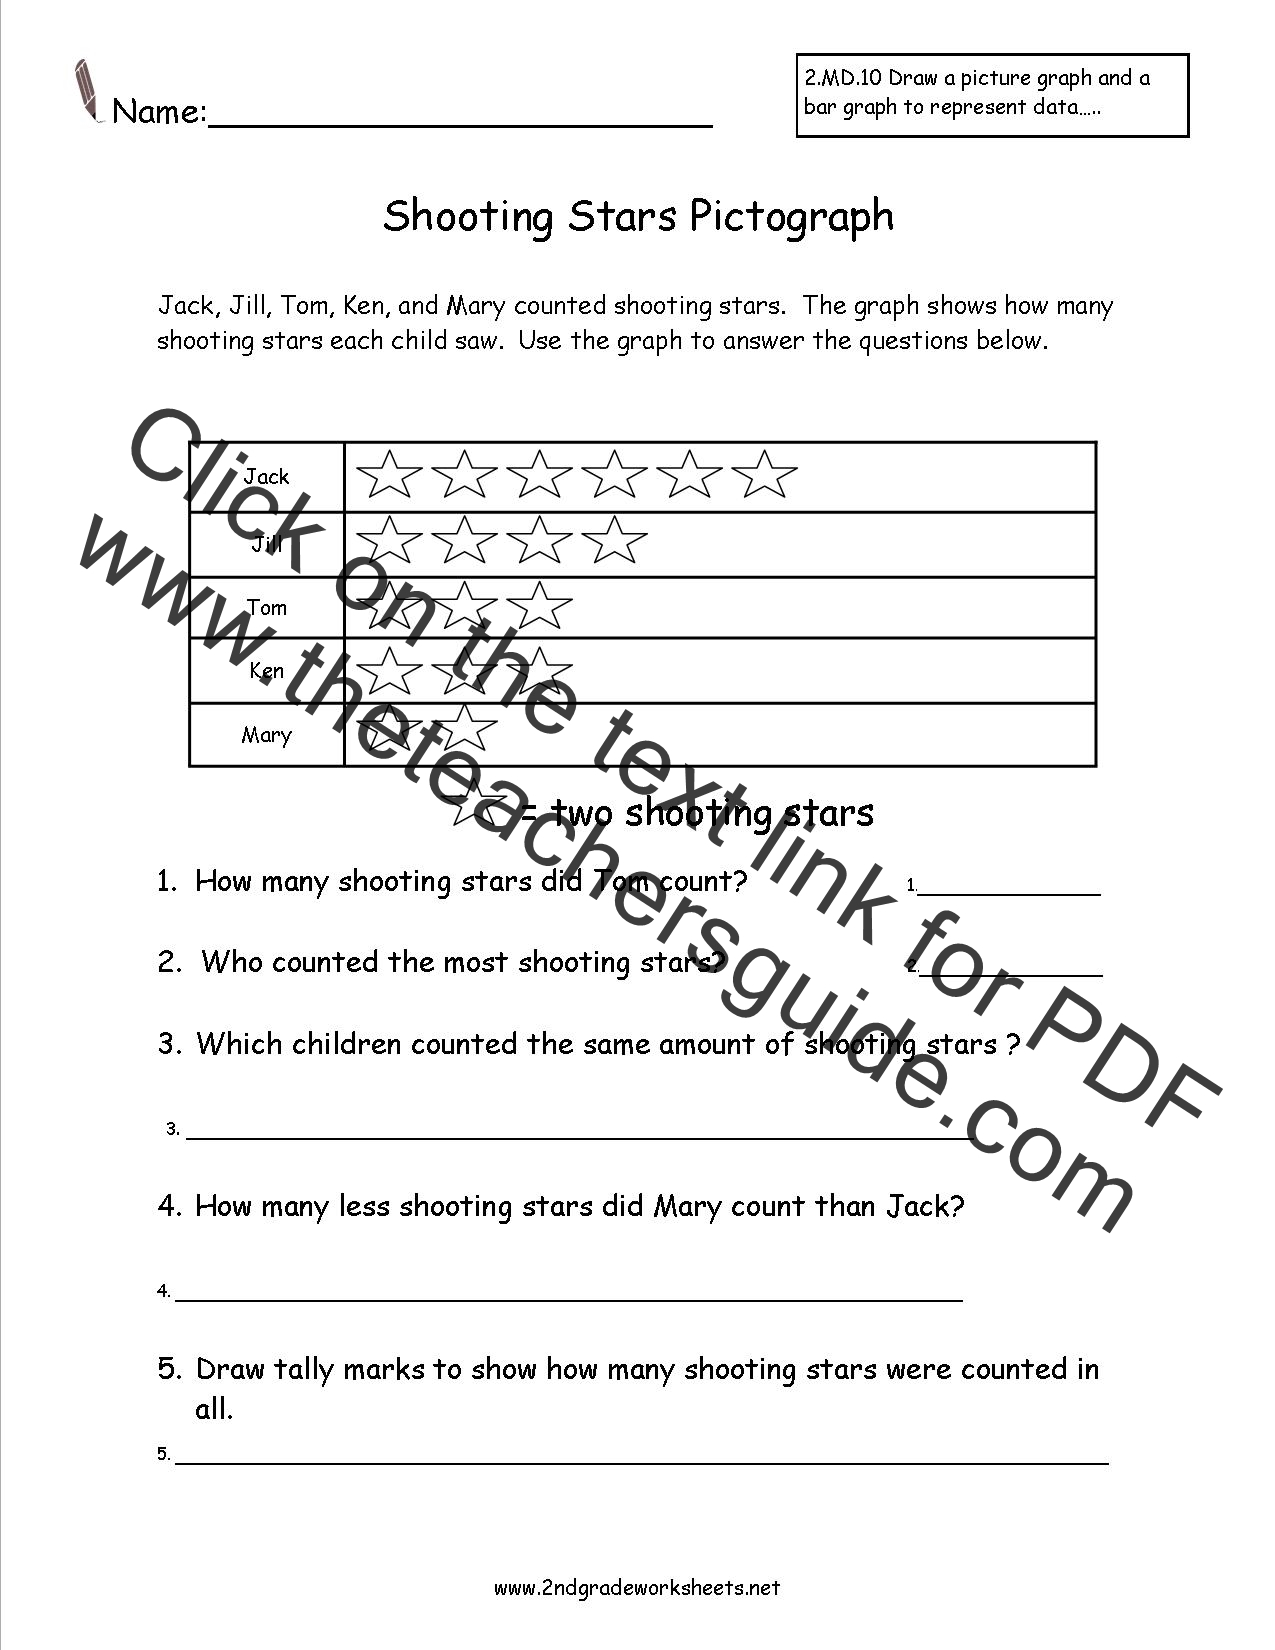 Worksheets Reading Worksheets For 2nd Grade Free 4 grade reading passage printable sheets 2nd writing worksheets